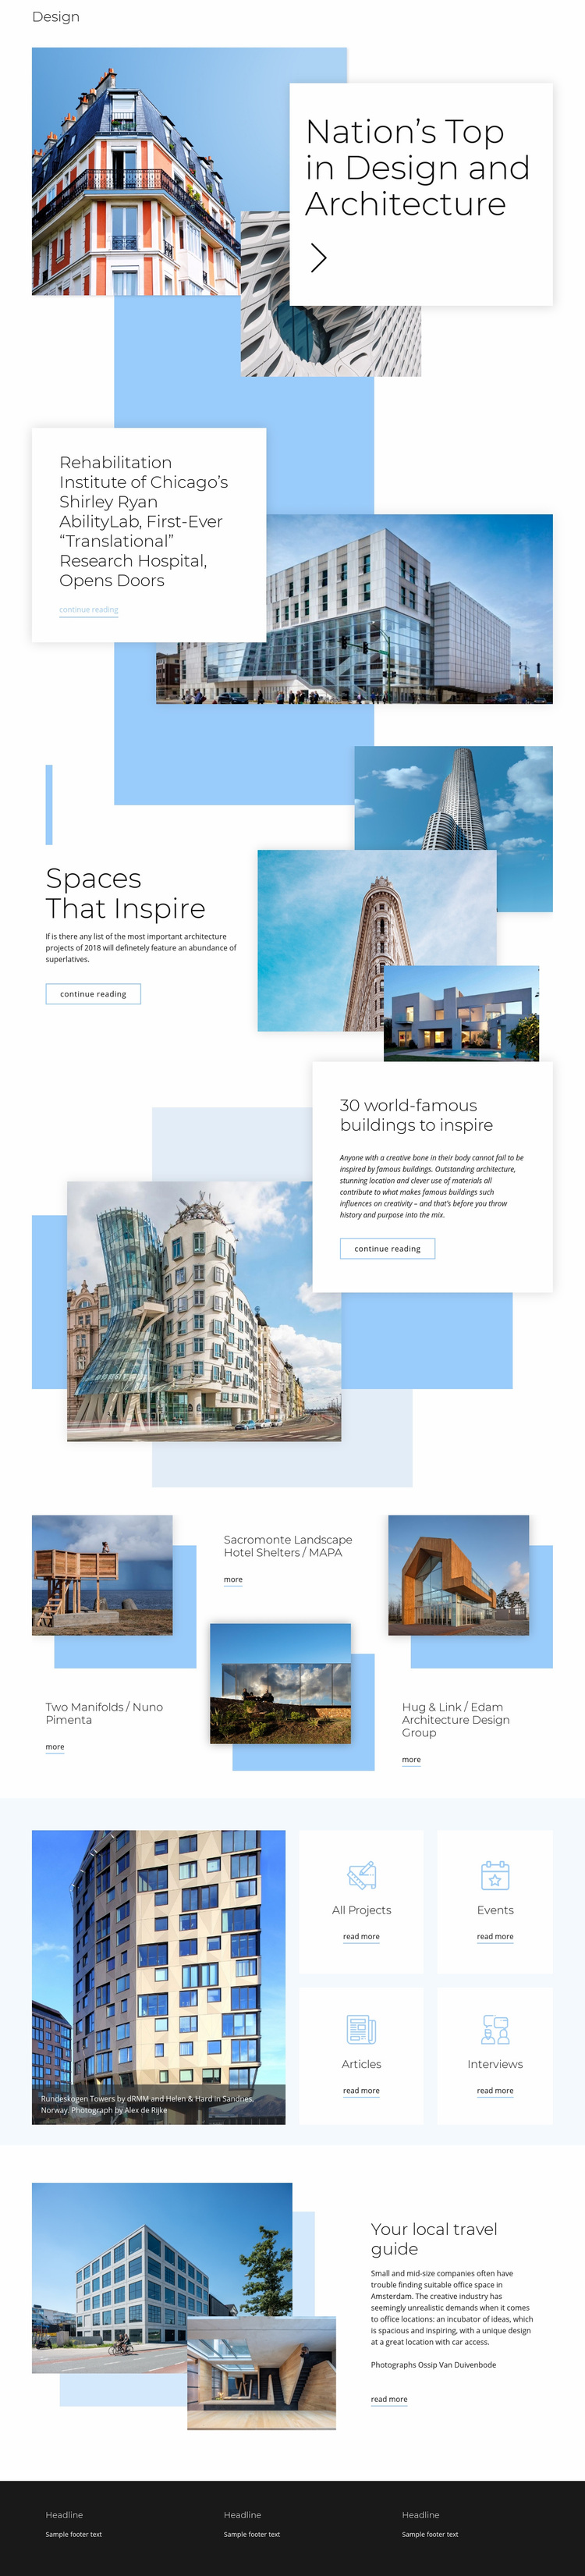 Rating for architecture Web Page Designer